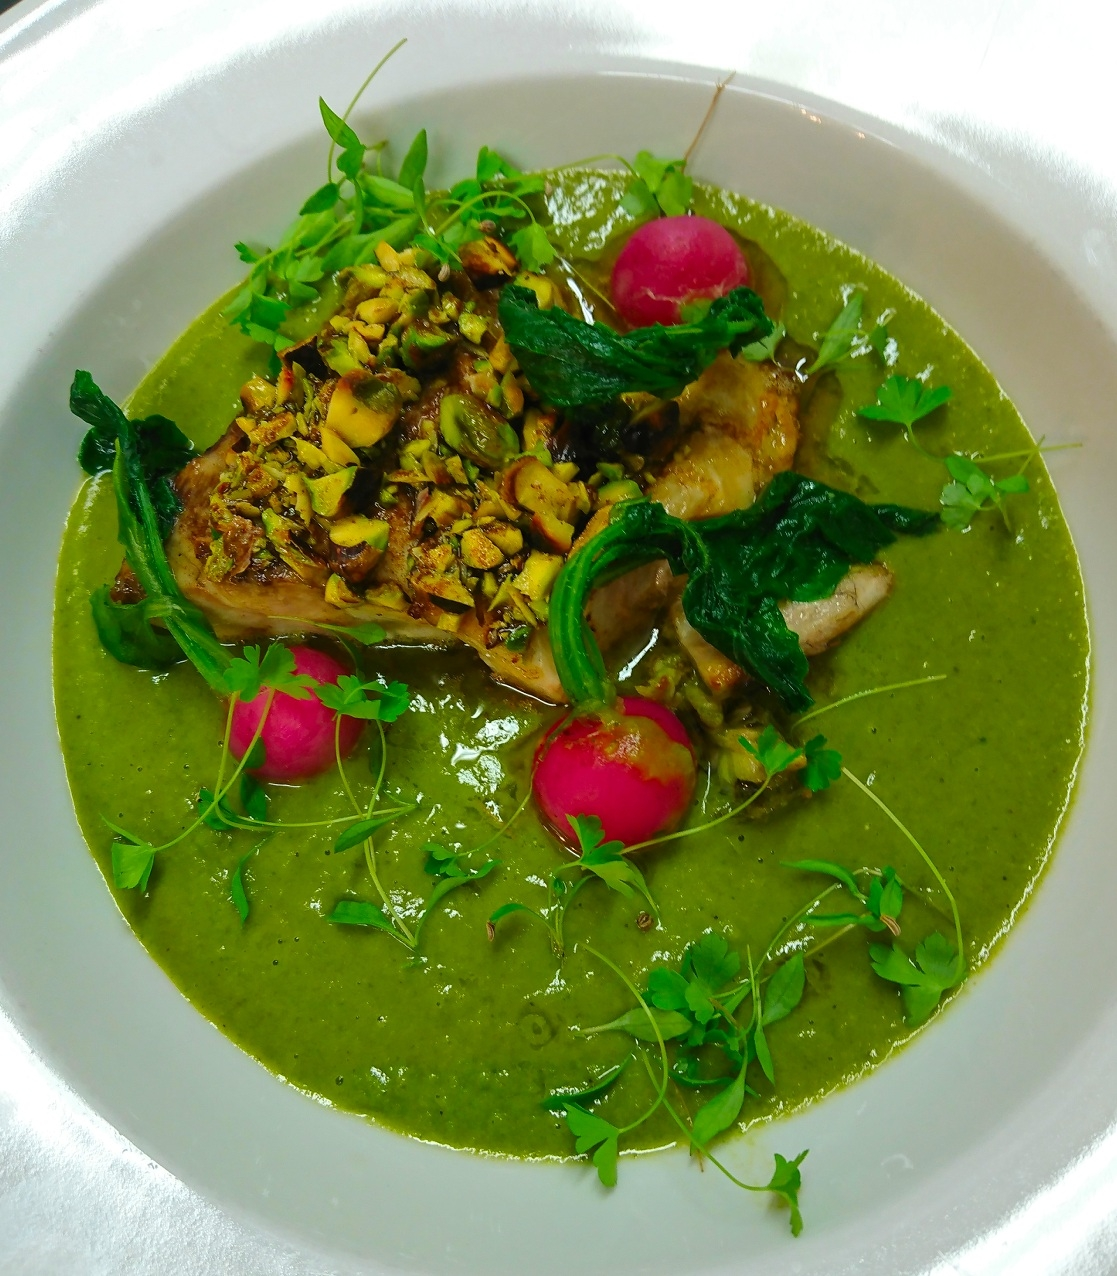 Pan seared hake fillet, parsley & wild rocket vichyssoise, garnished with blanched radish